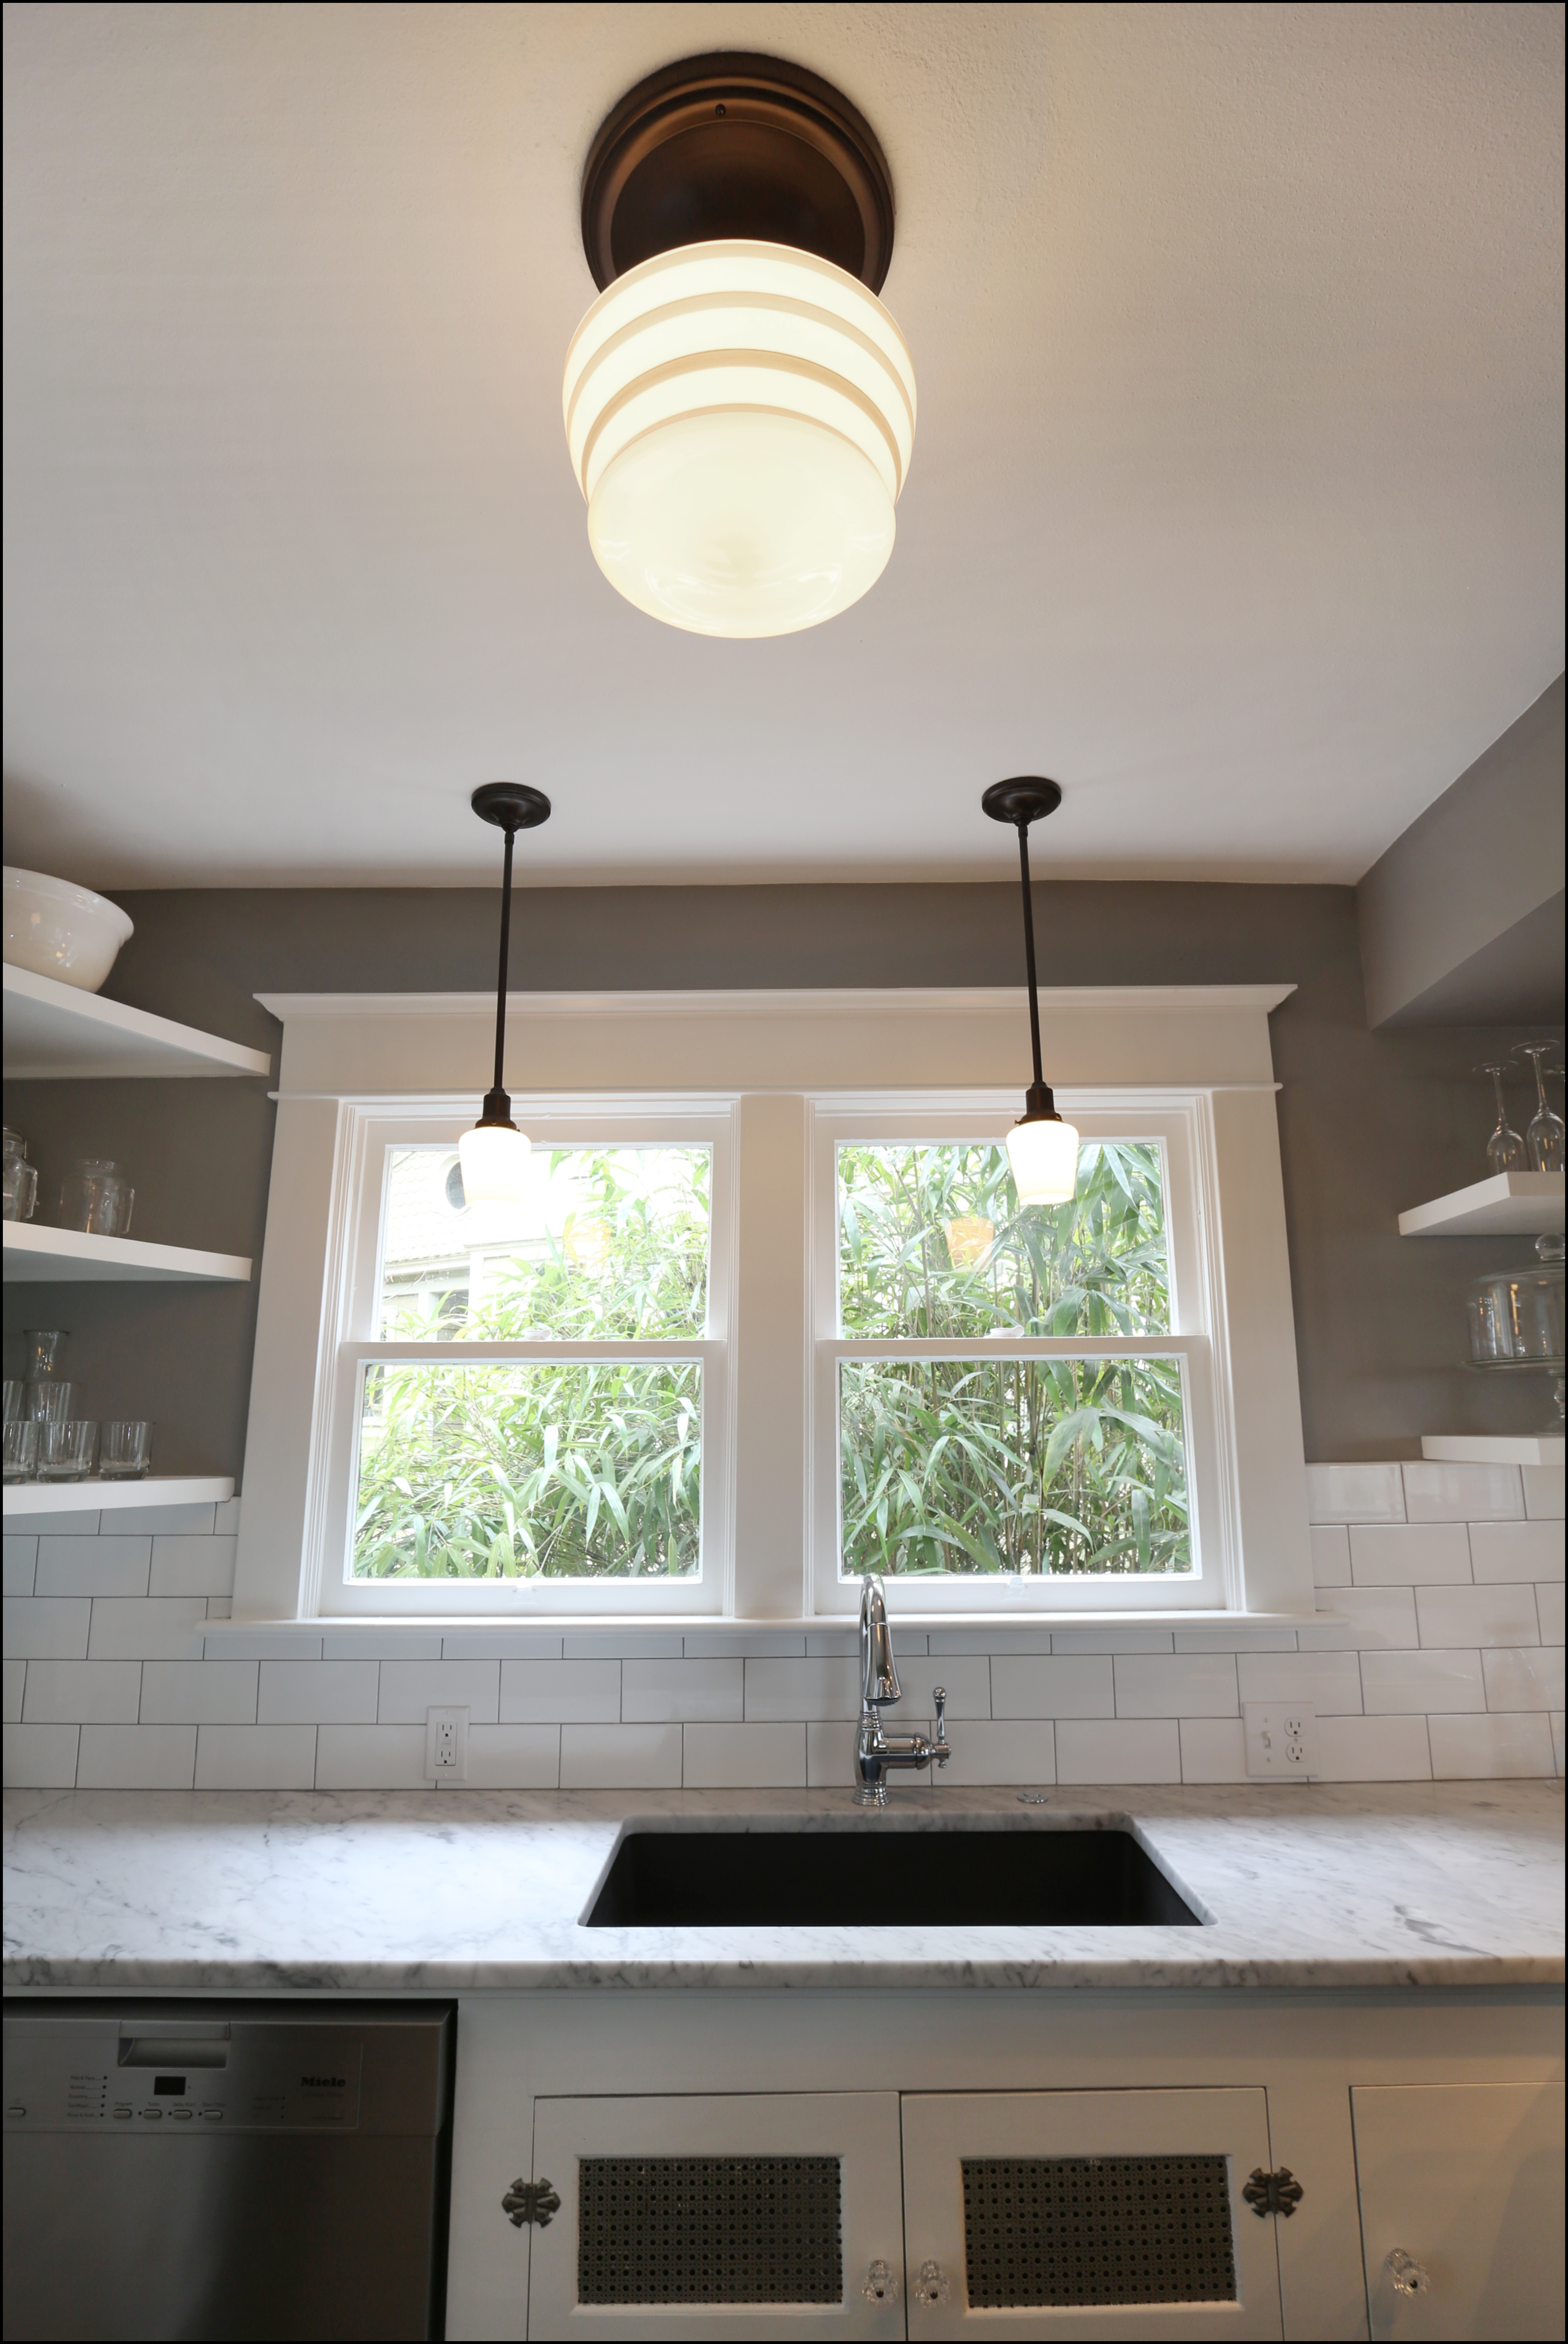 charming Schoolhouse Pendant Lighting Kitchen #5: The timeless lighting fixtures from Schoolhouse Electric add grace without distracting from the clean lines of the kitchen. Weu0026#39;re grateful to Master Tech ...